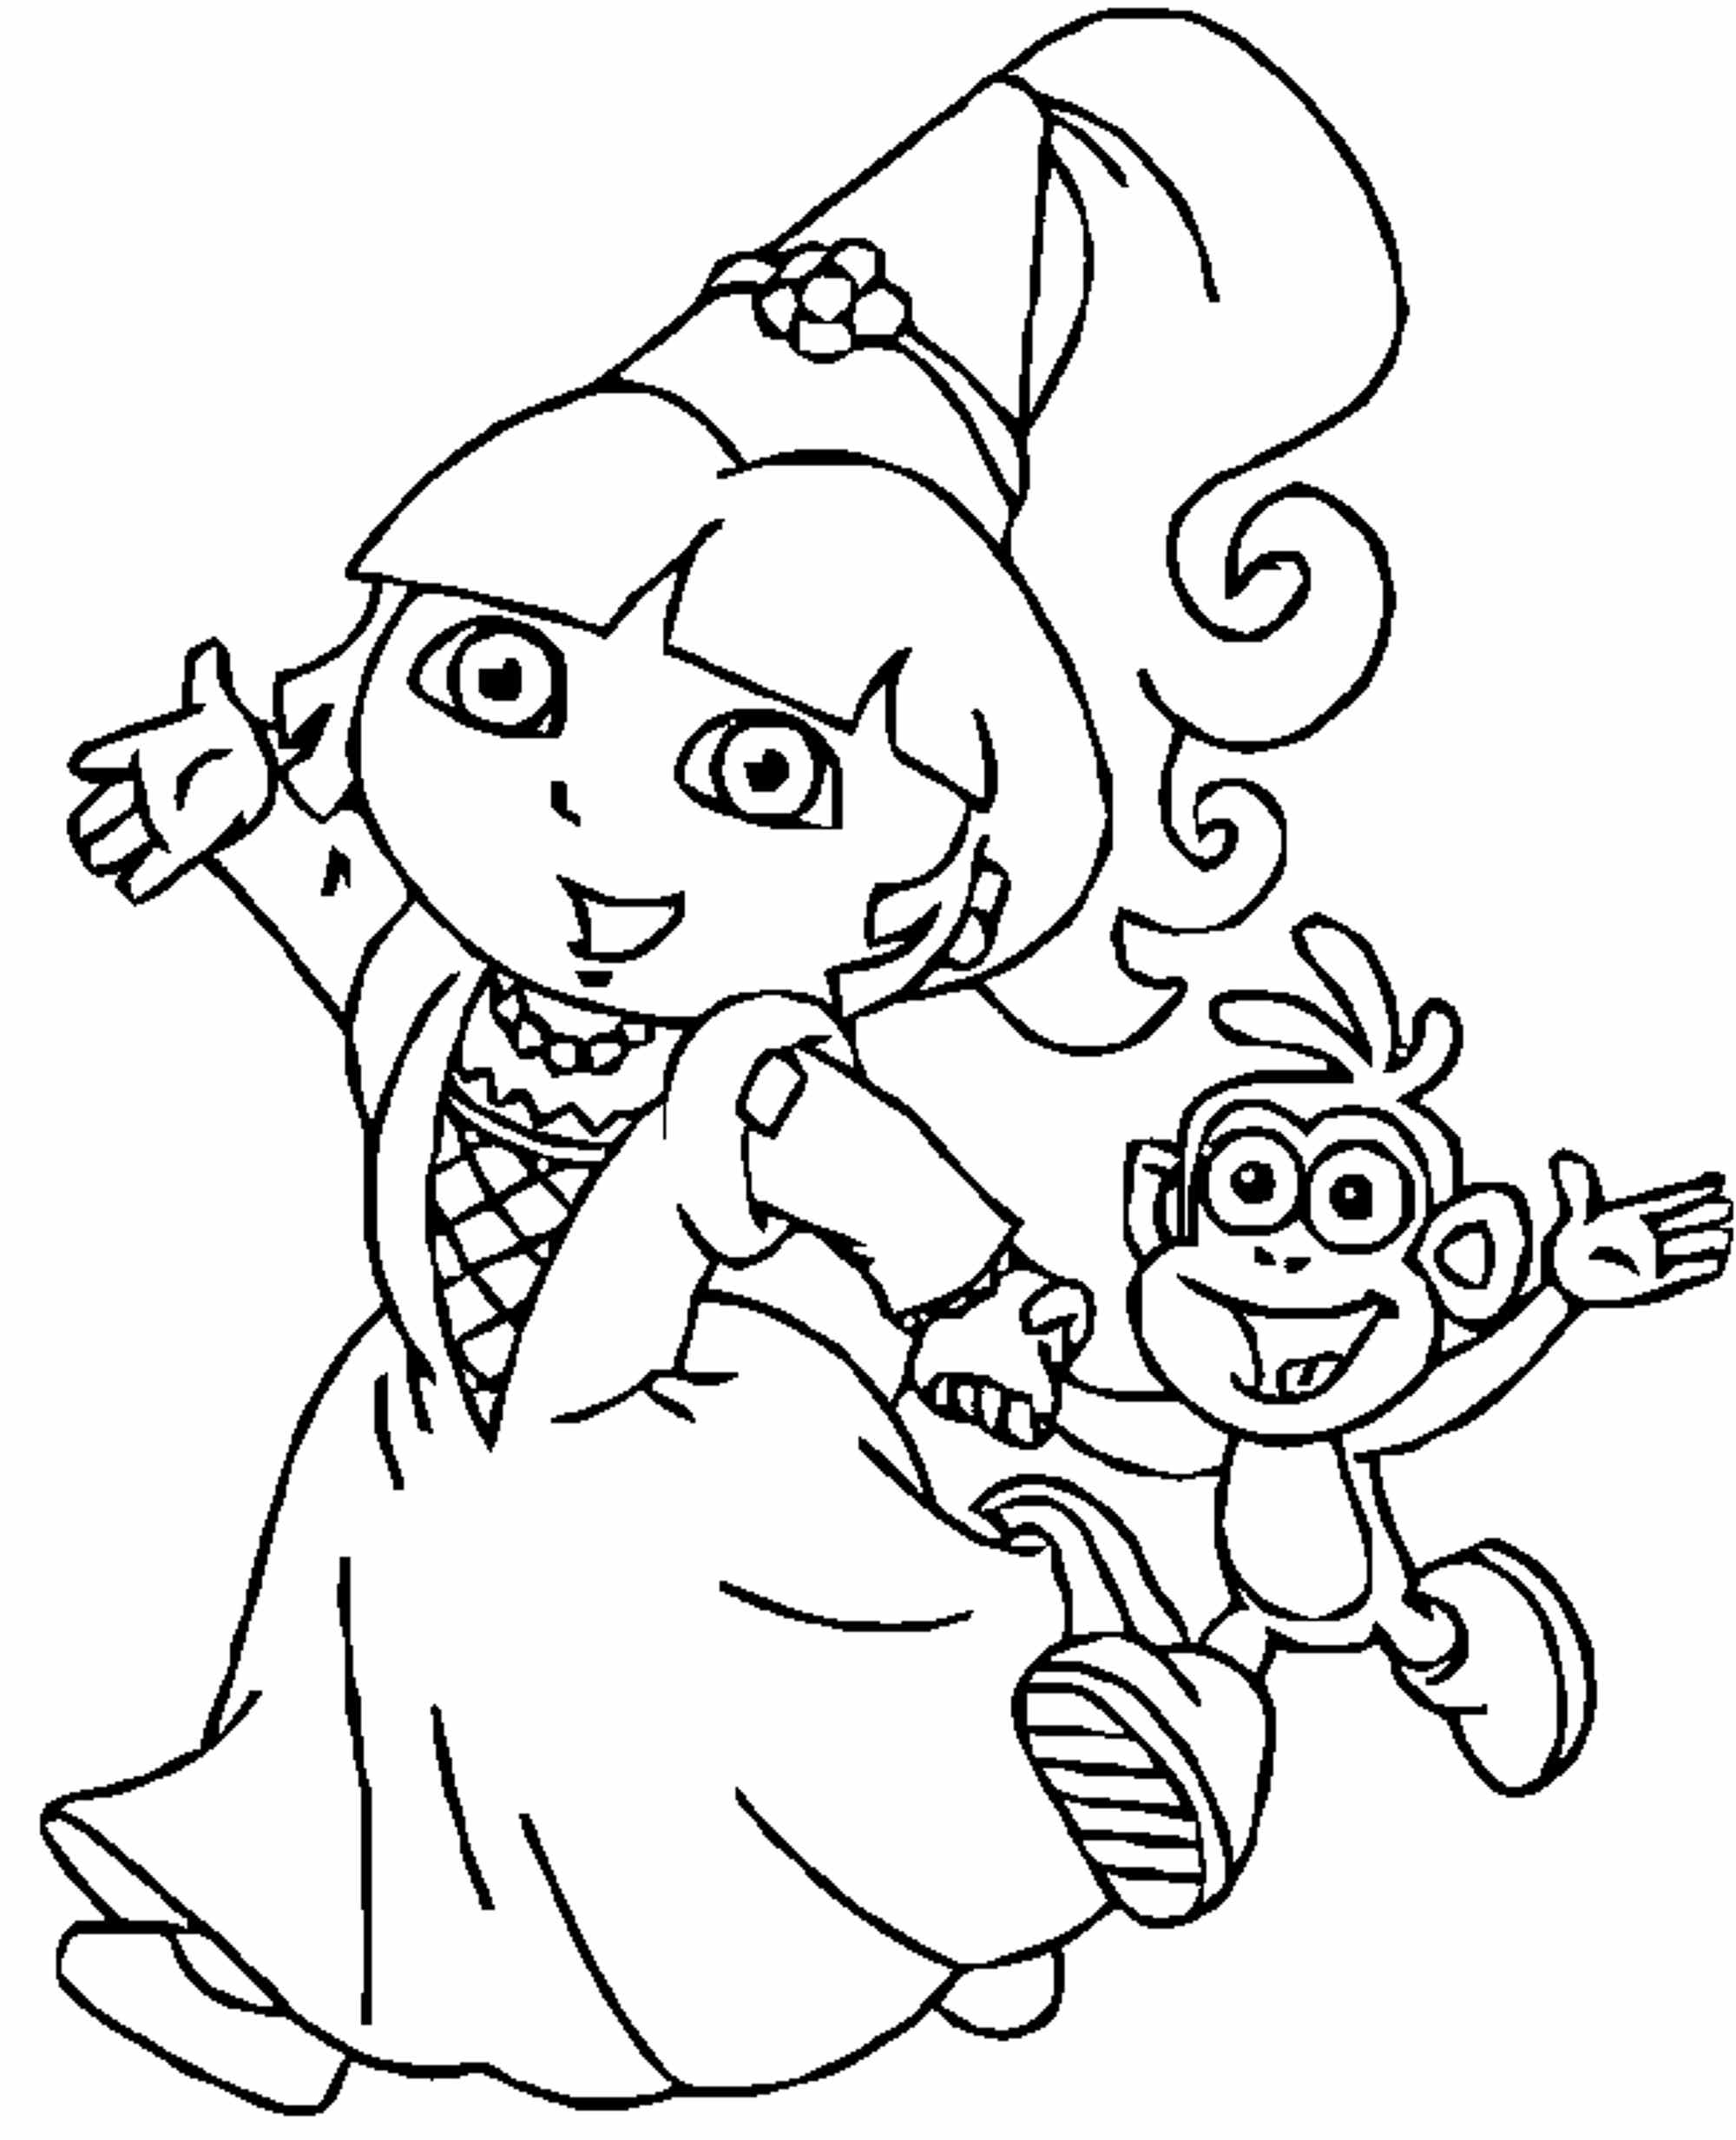 Print download dora coloring pages to learn new things for Dora the explorer coloring pages printable